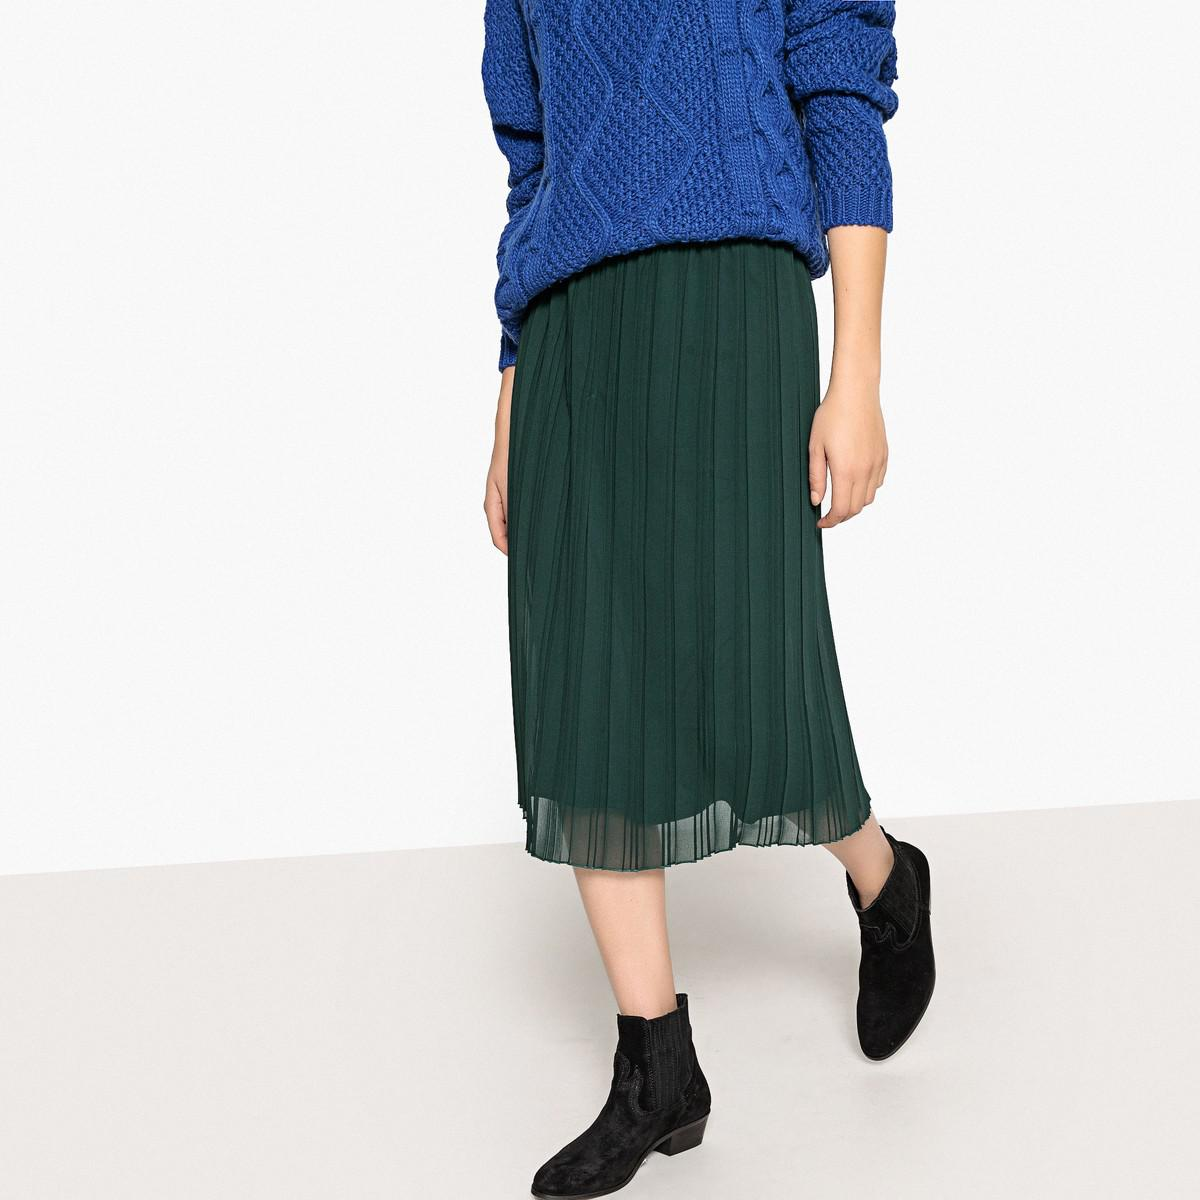 833f0ab2ec Lyst - La Redoute Sporty Pleated Skirt With Elasticated Waist in Green